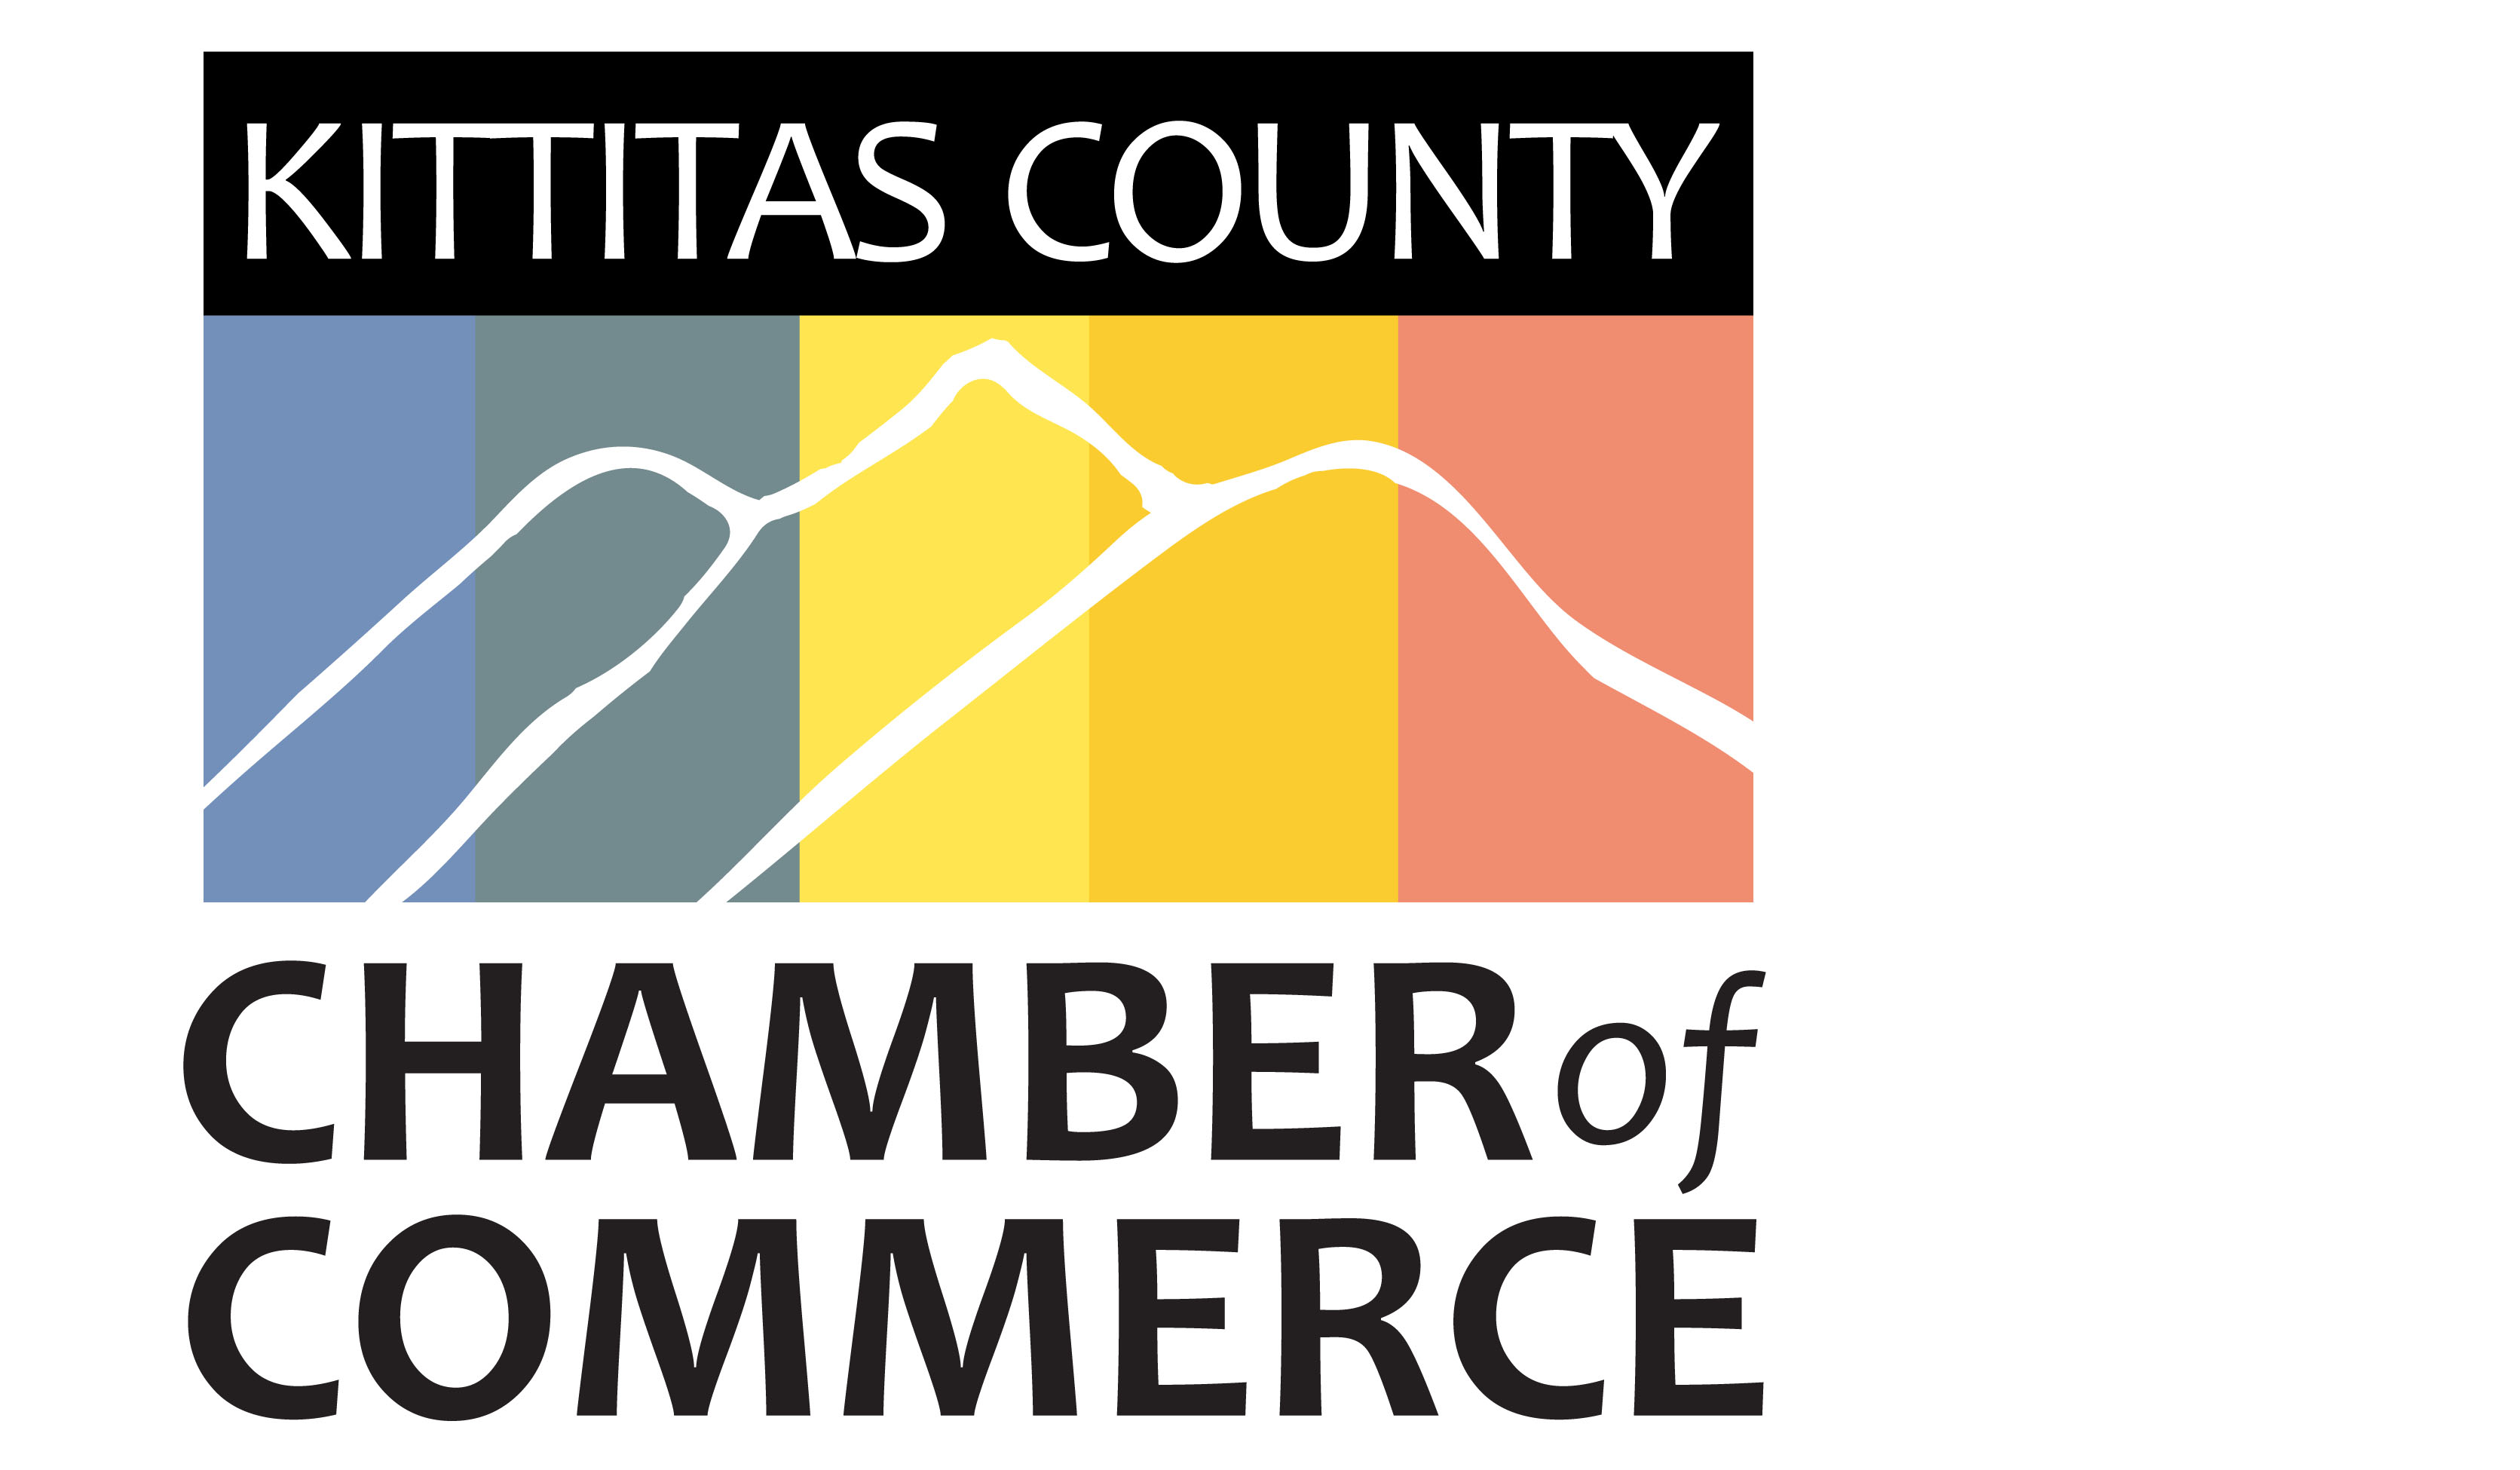 Kittitas County Chamber of Commerce